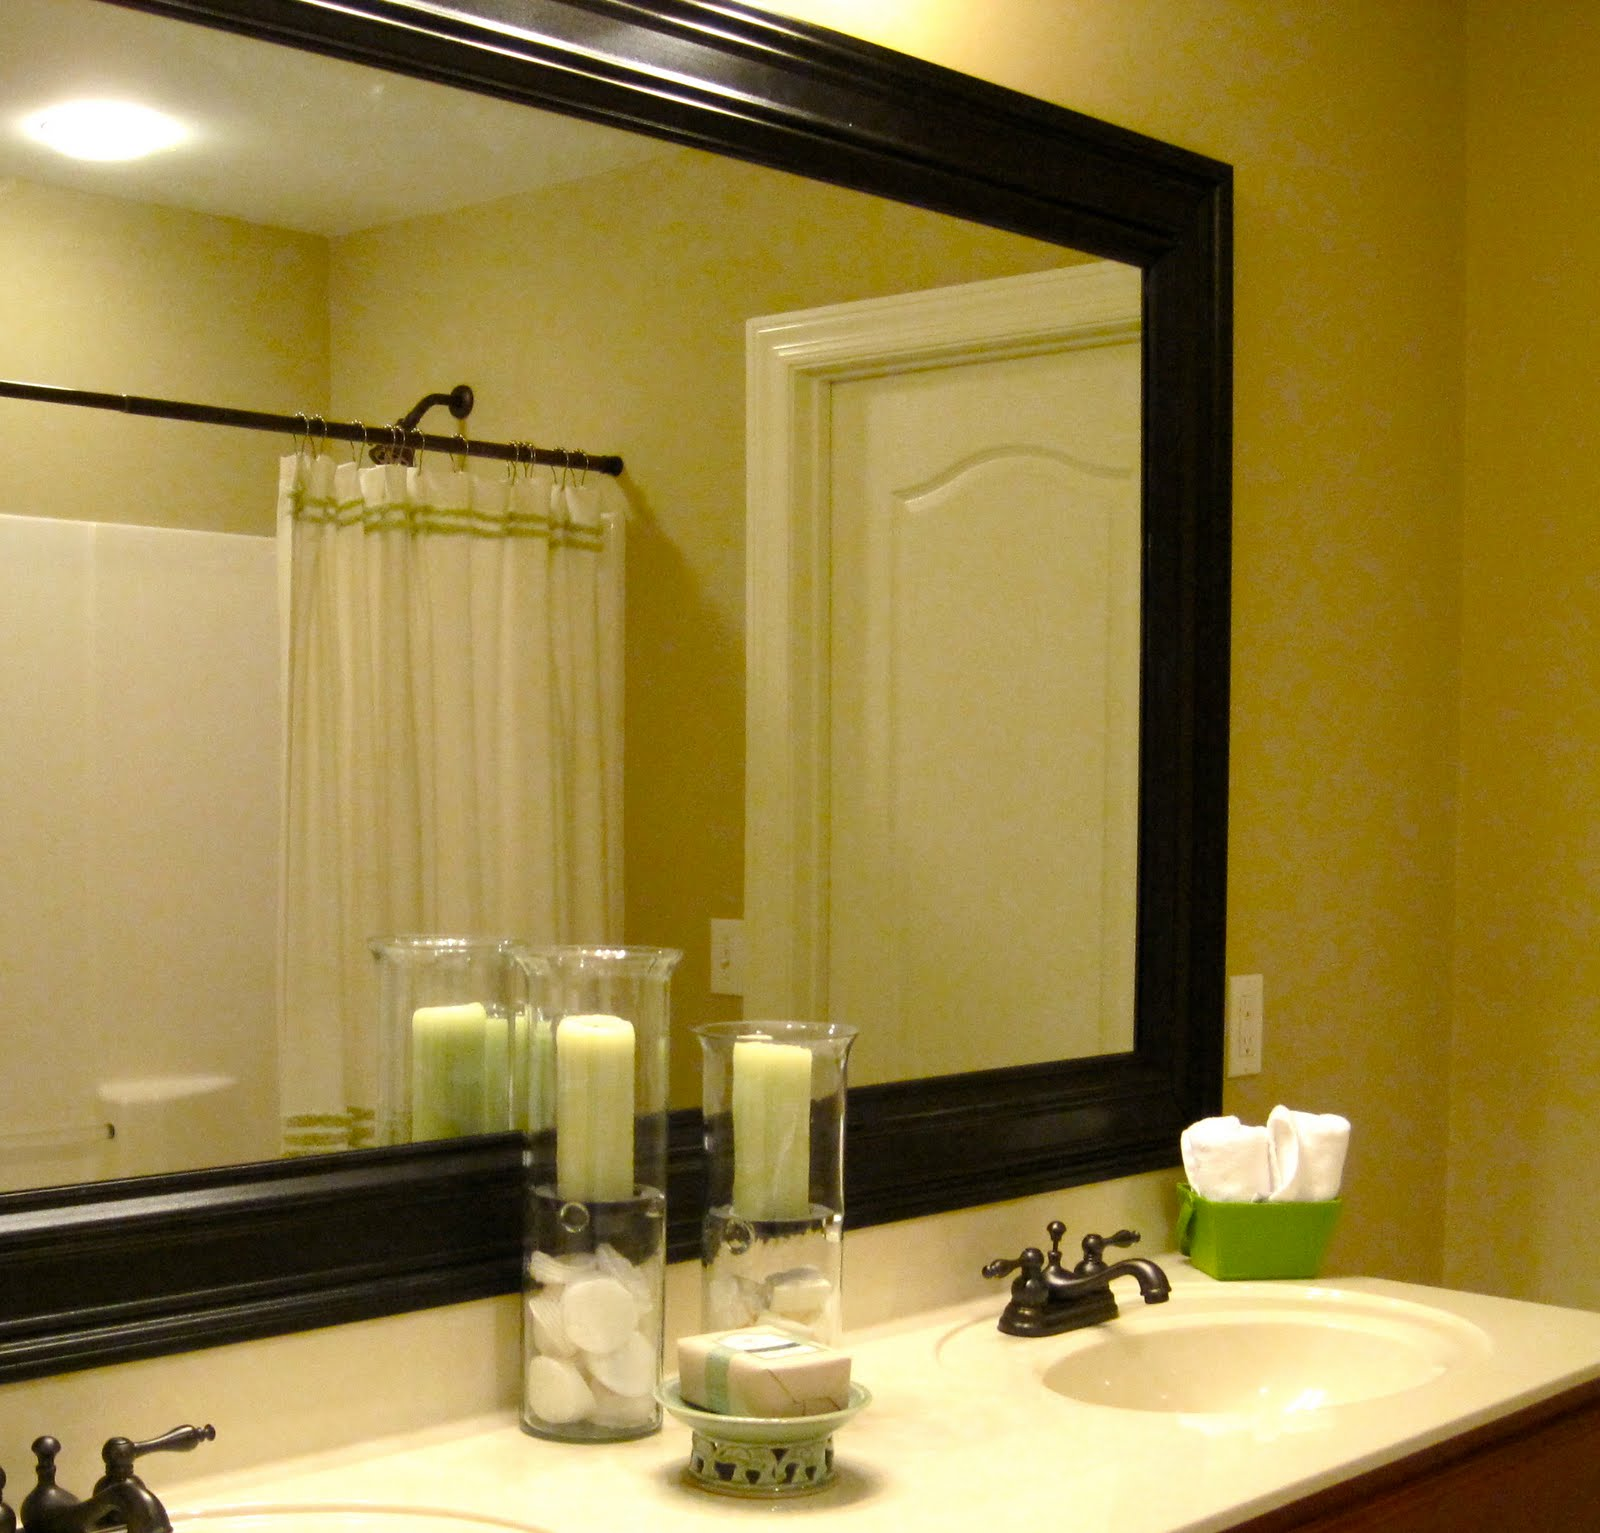 Bathroom-Vanity-Mirror-Replacement-Ideas